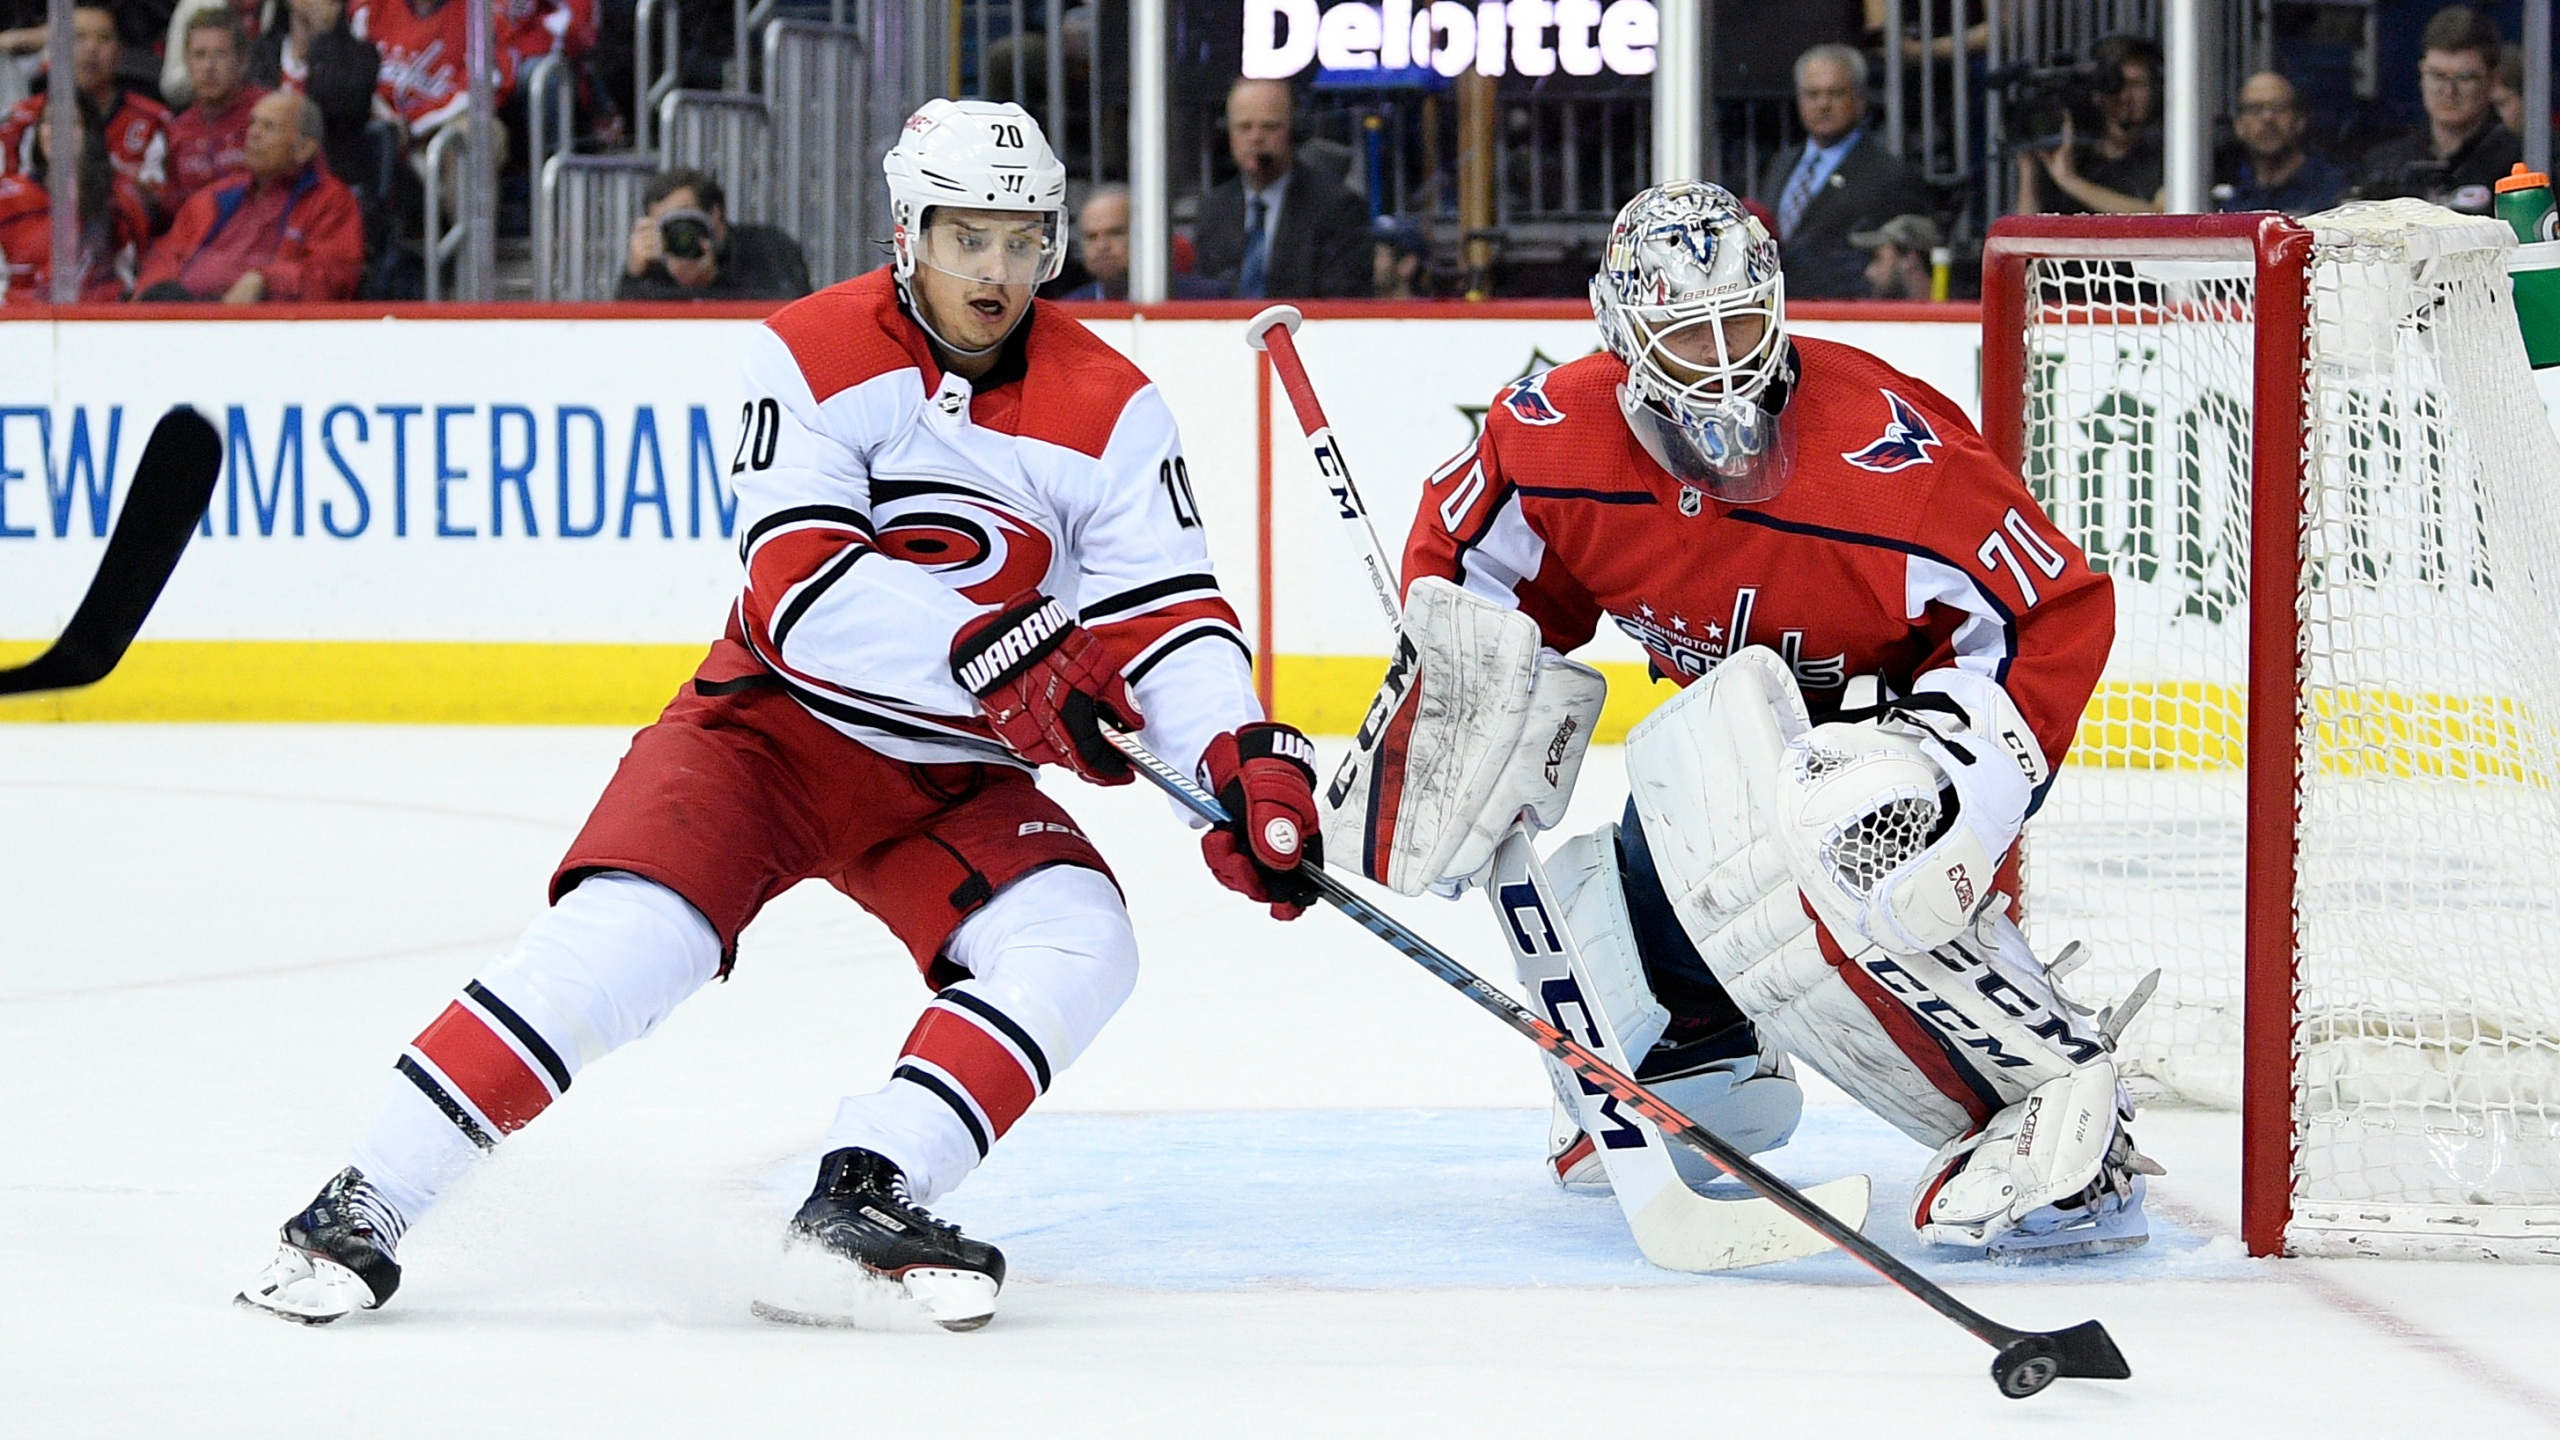 Hurricanes_Capitals_Hockey_75536-159532.jpg93197763